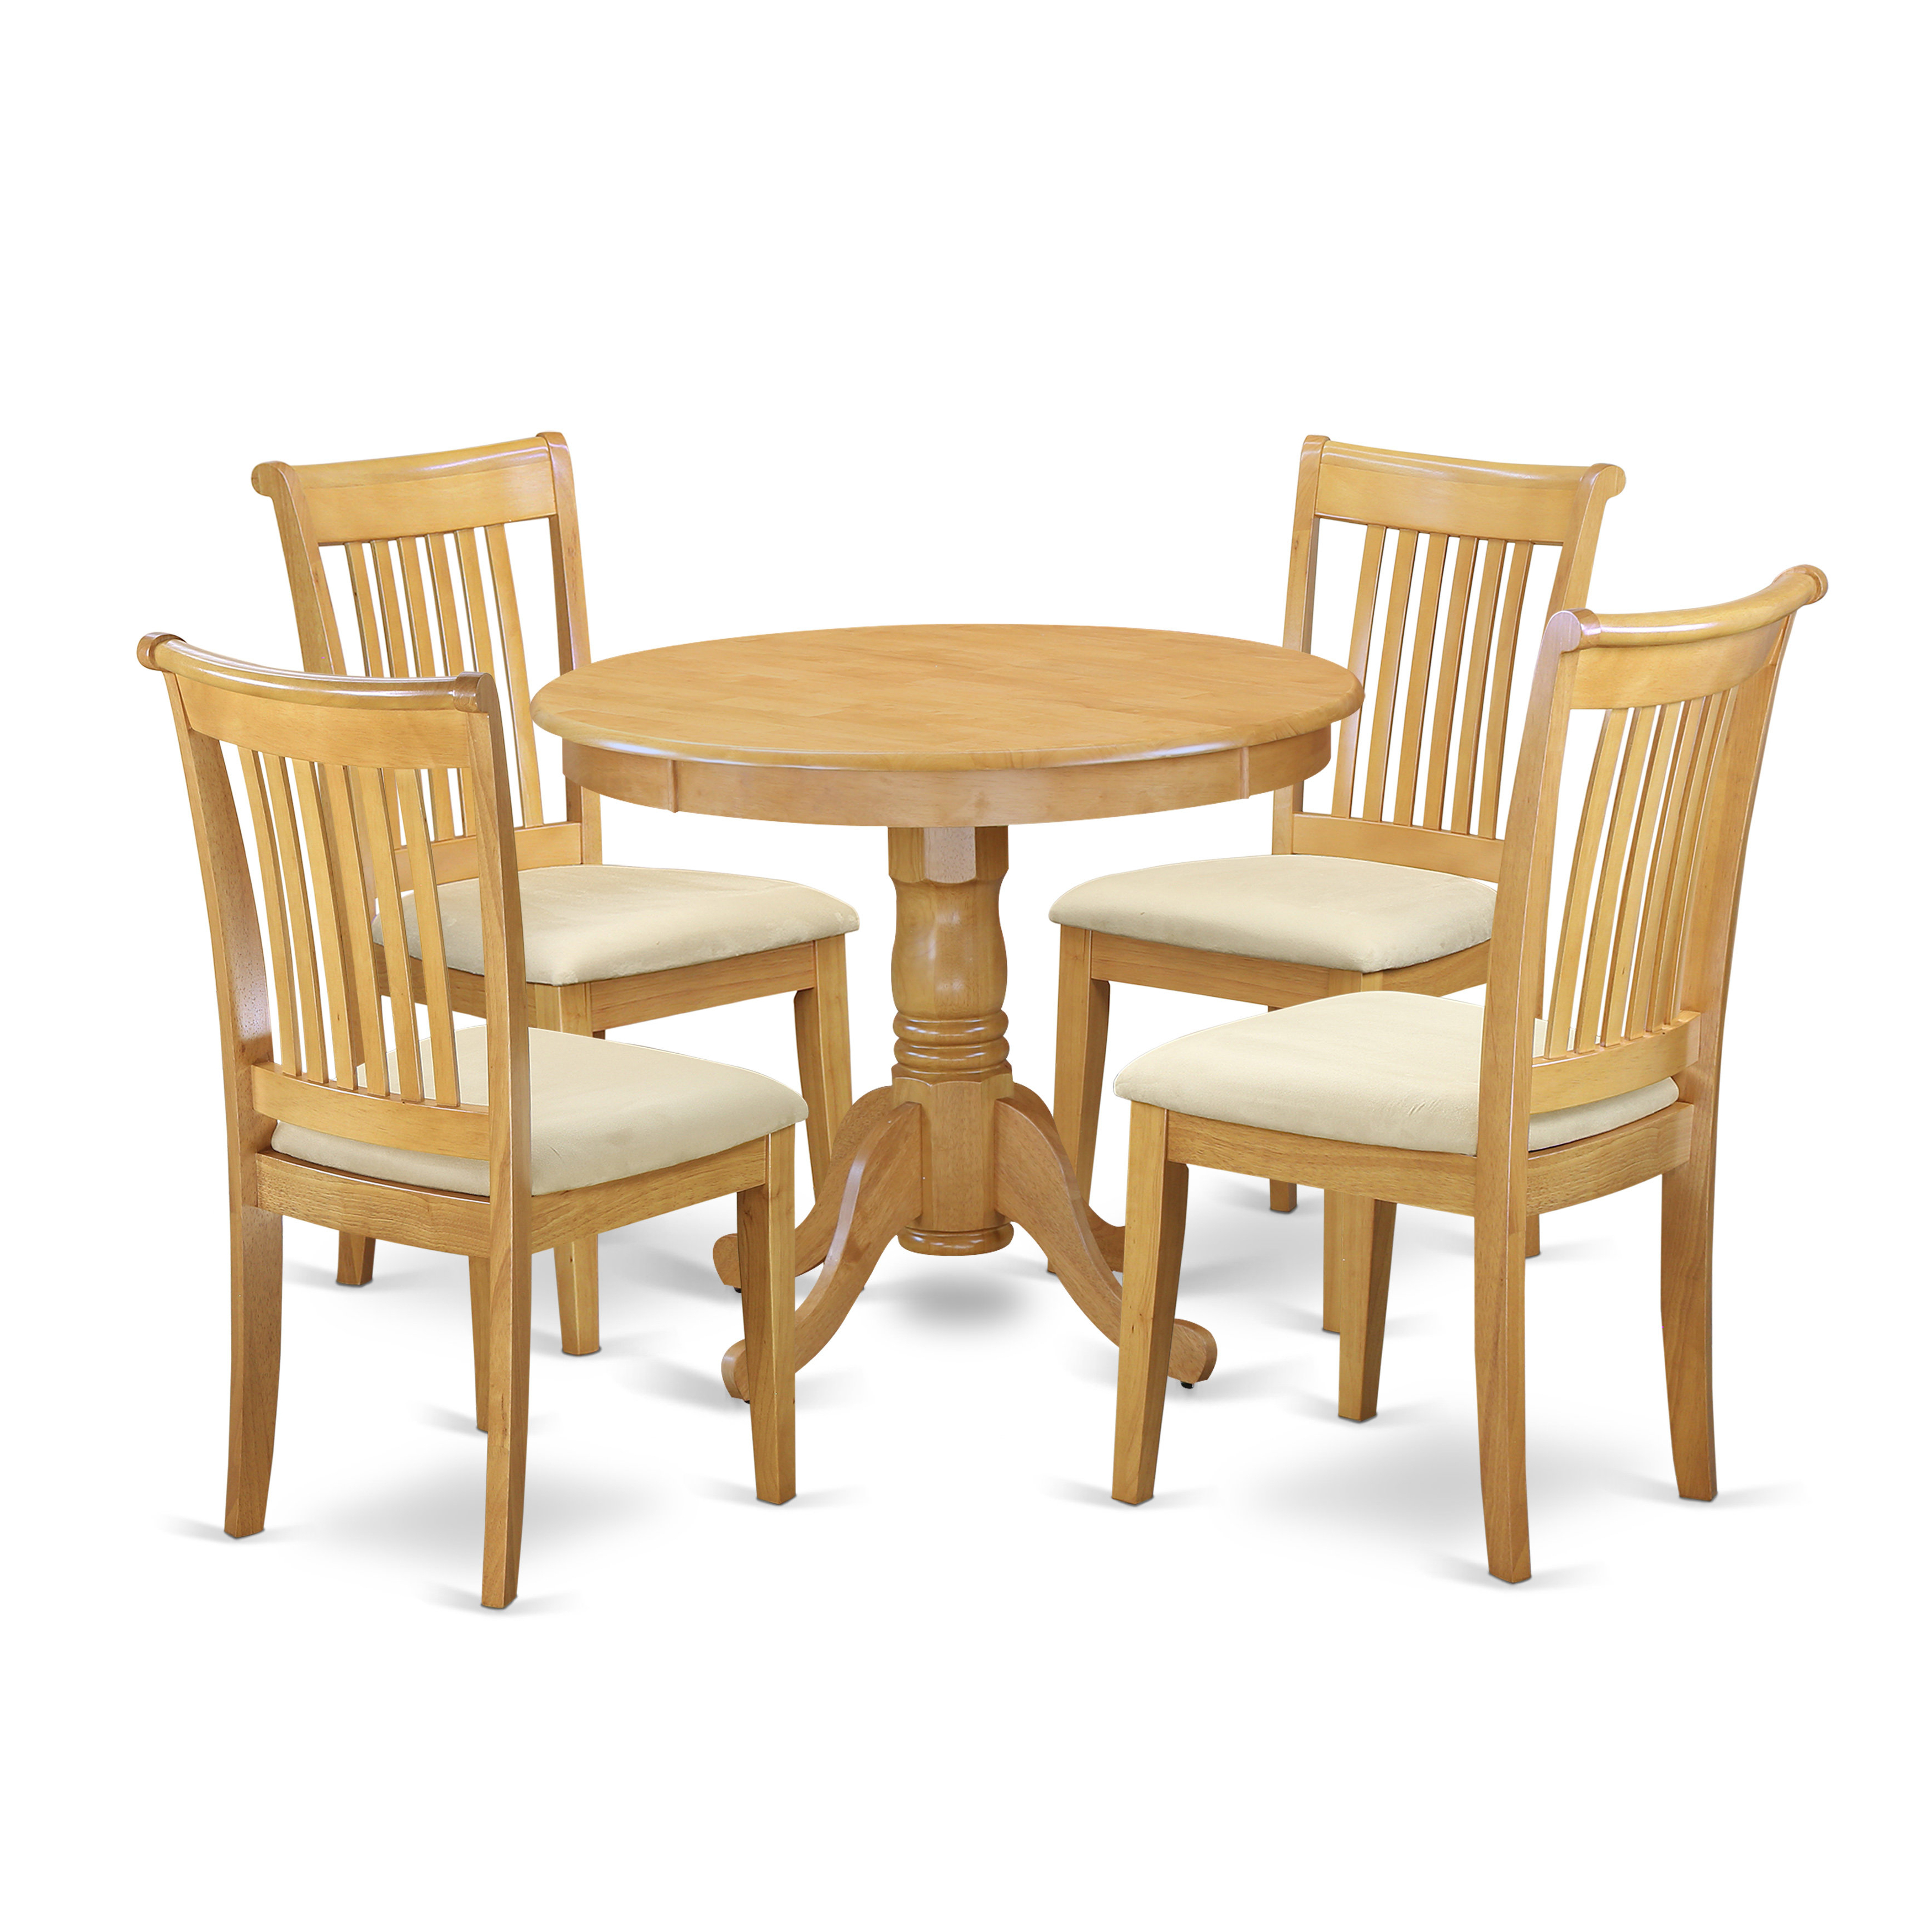 5 Piece Breakfast Nook Dining Sets Throughout Well Known August Grove Asher 5 Piece Breakfast Nook Dining Set (View 3 of 25)